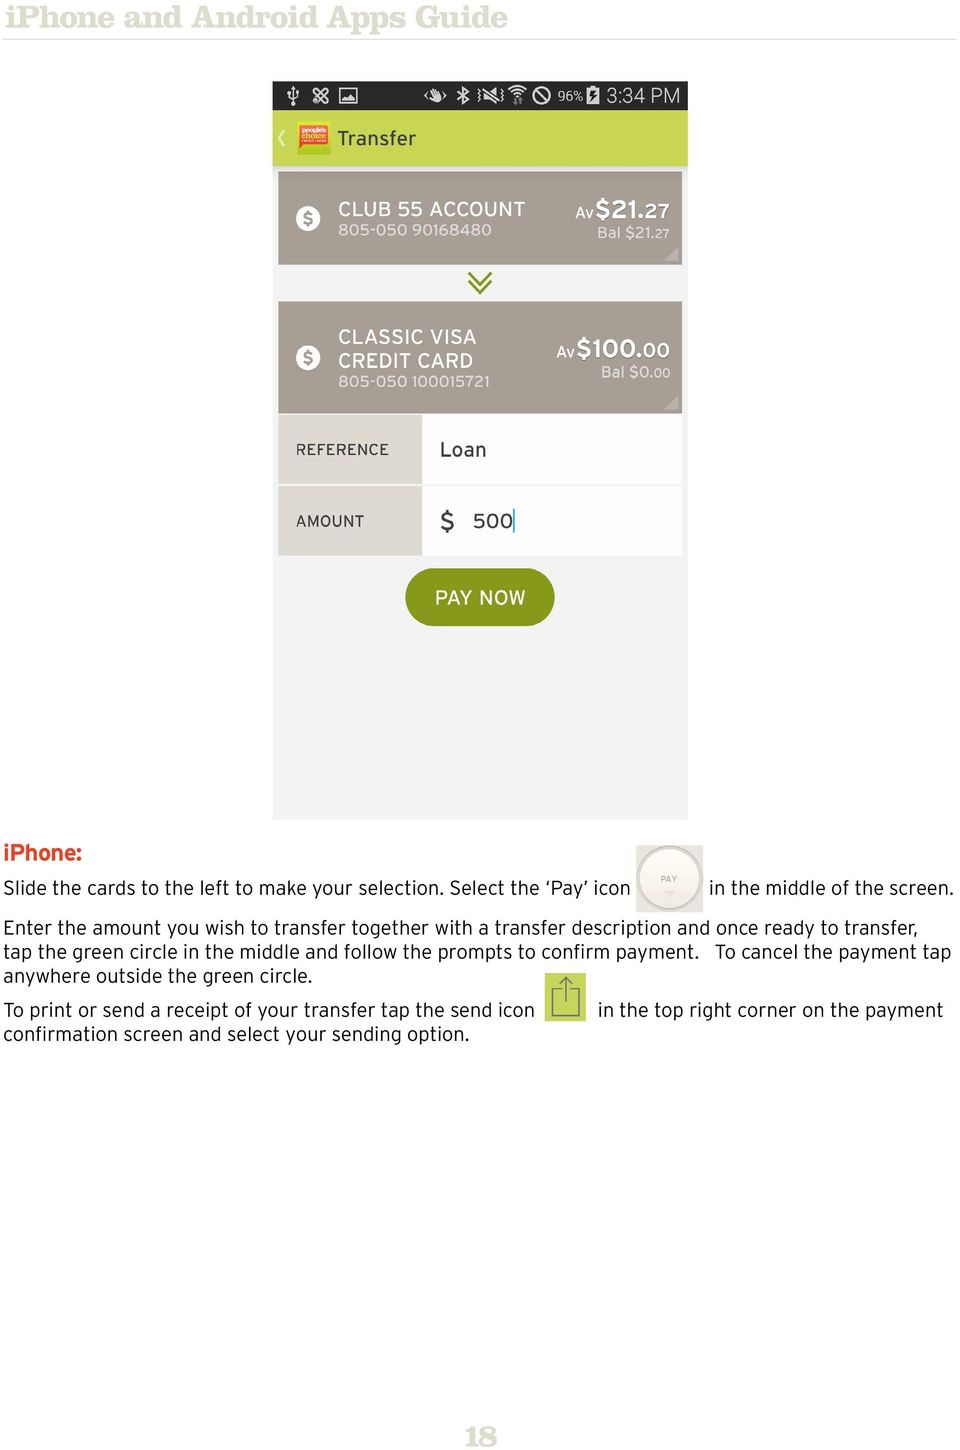 the middle and follow the prompts to confirm payment. To cancel the payment tap anywhere outside the green circle.